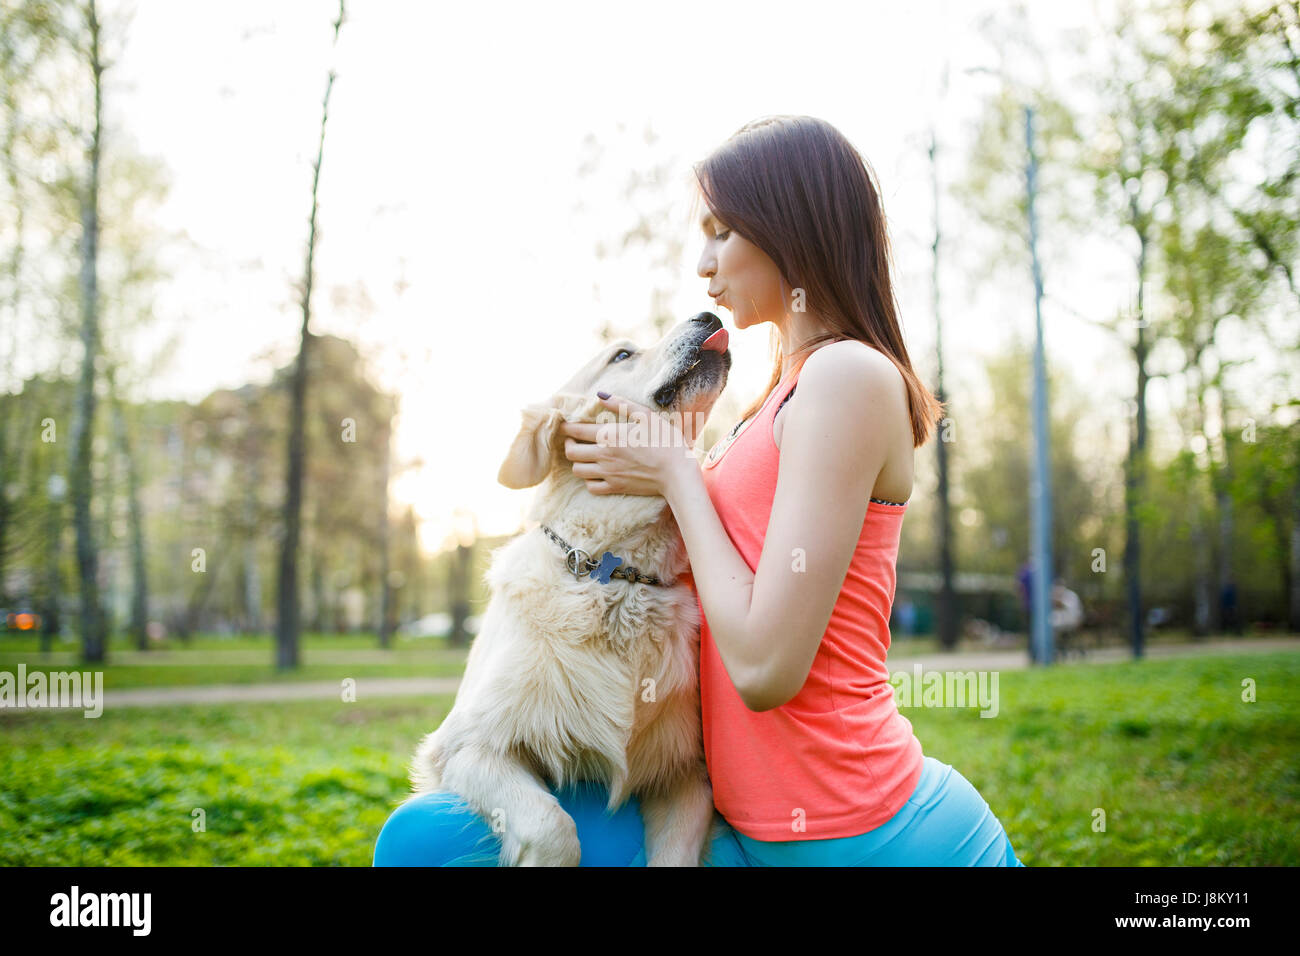 Woman hugging dog on lawn - Stock Image